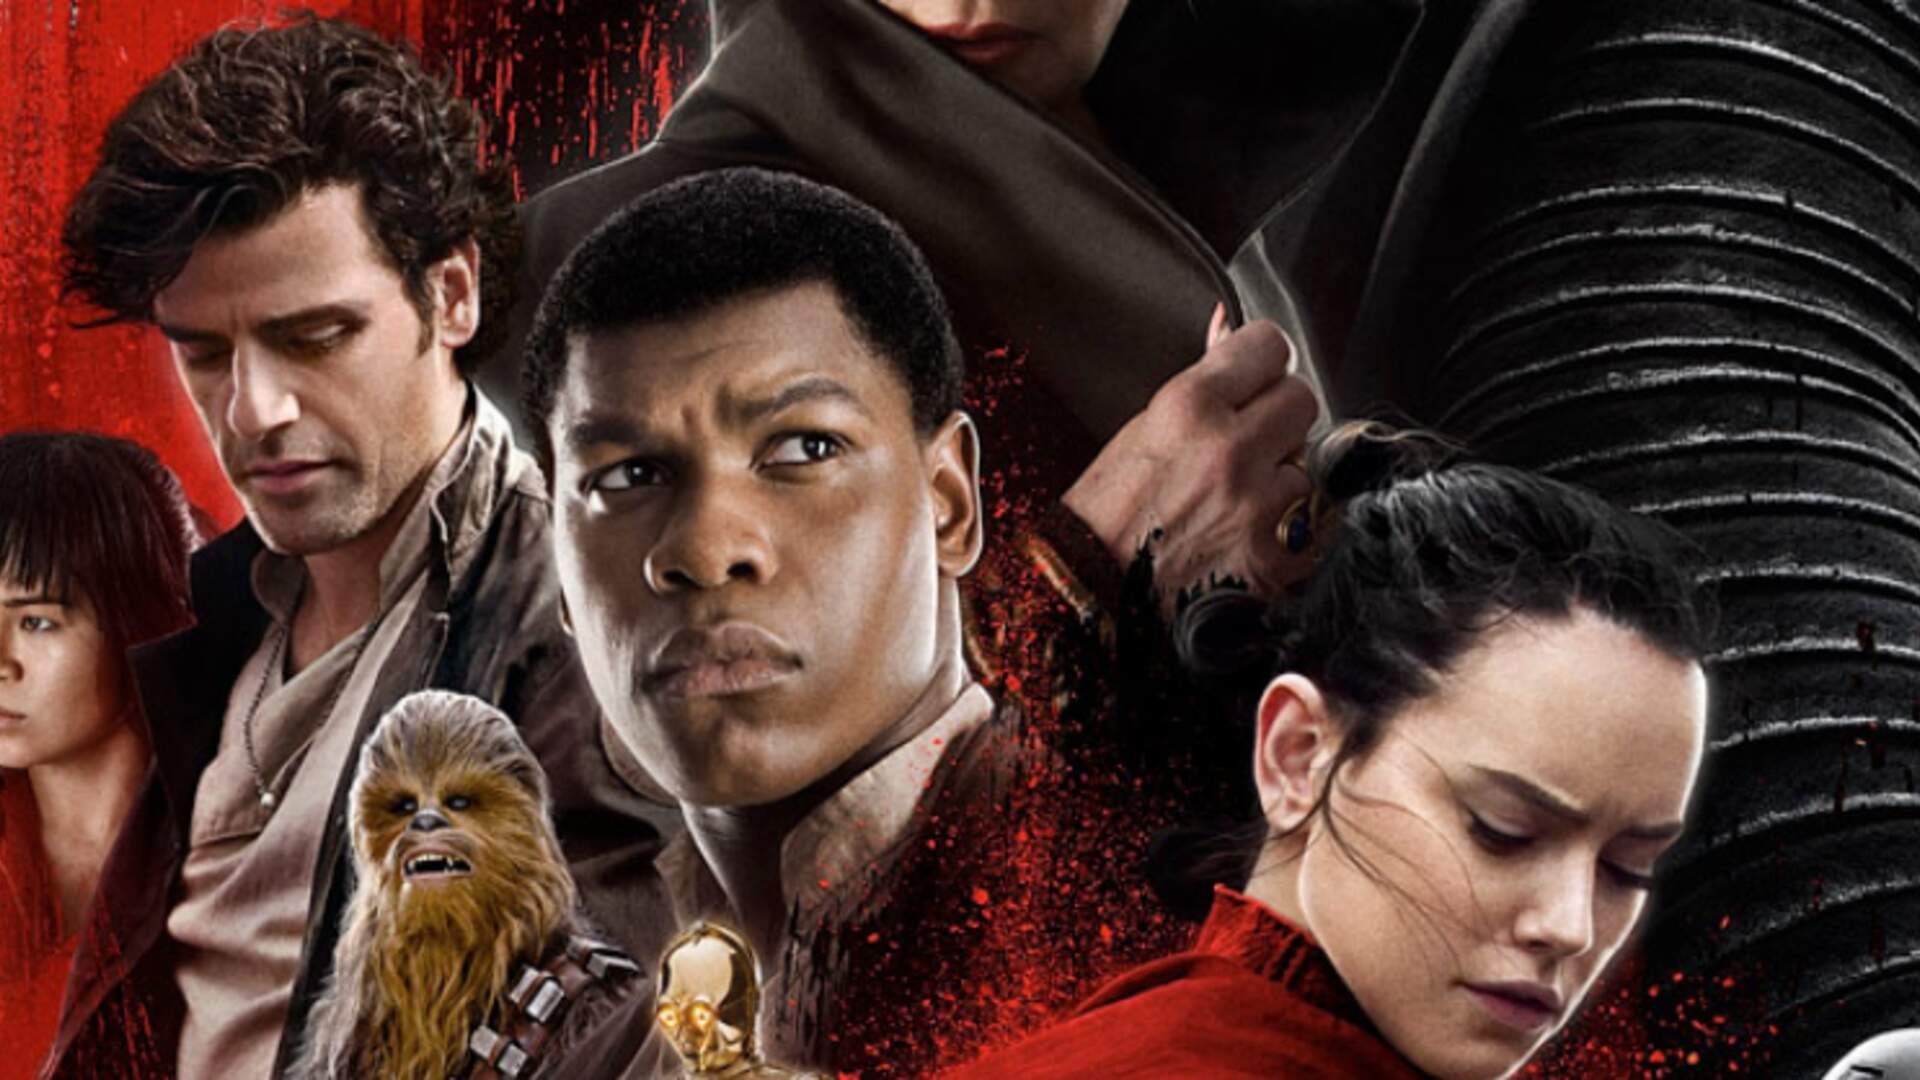 The Last Jedi Opens the Doors to a New Expanded Universe for Star Wars Video Games